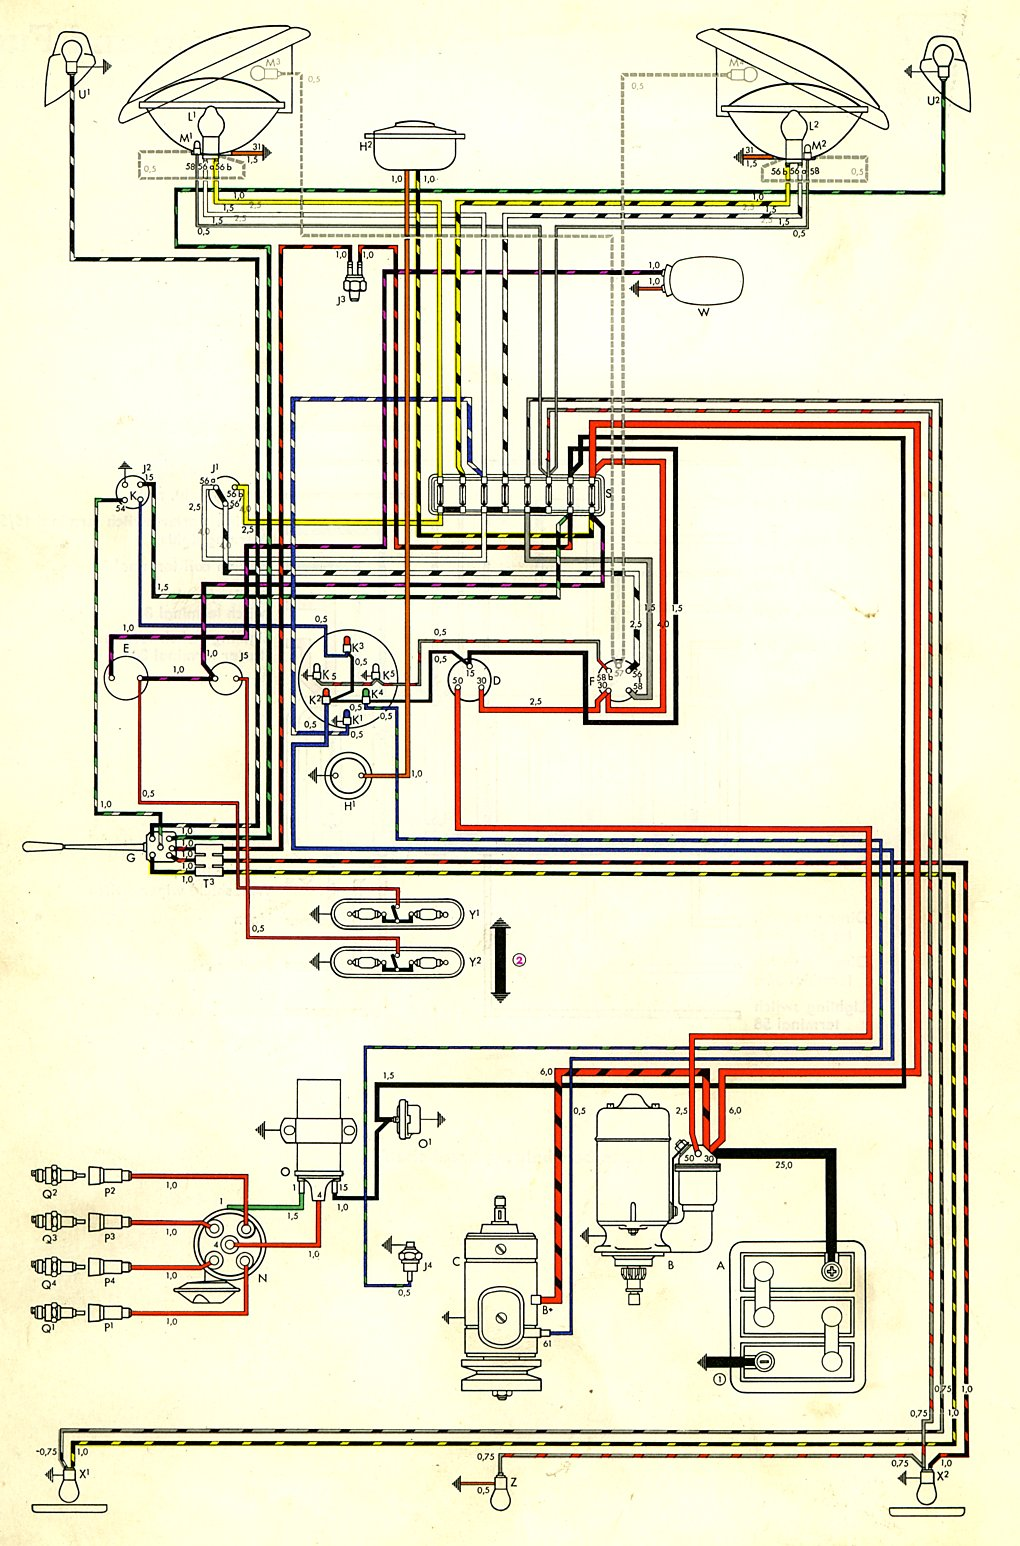 78 vw bus engine diagram vw type 4 engine wiring diagram